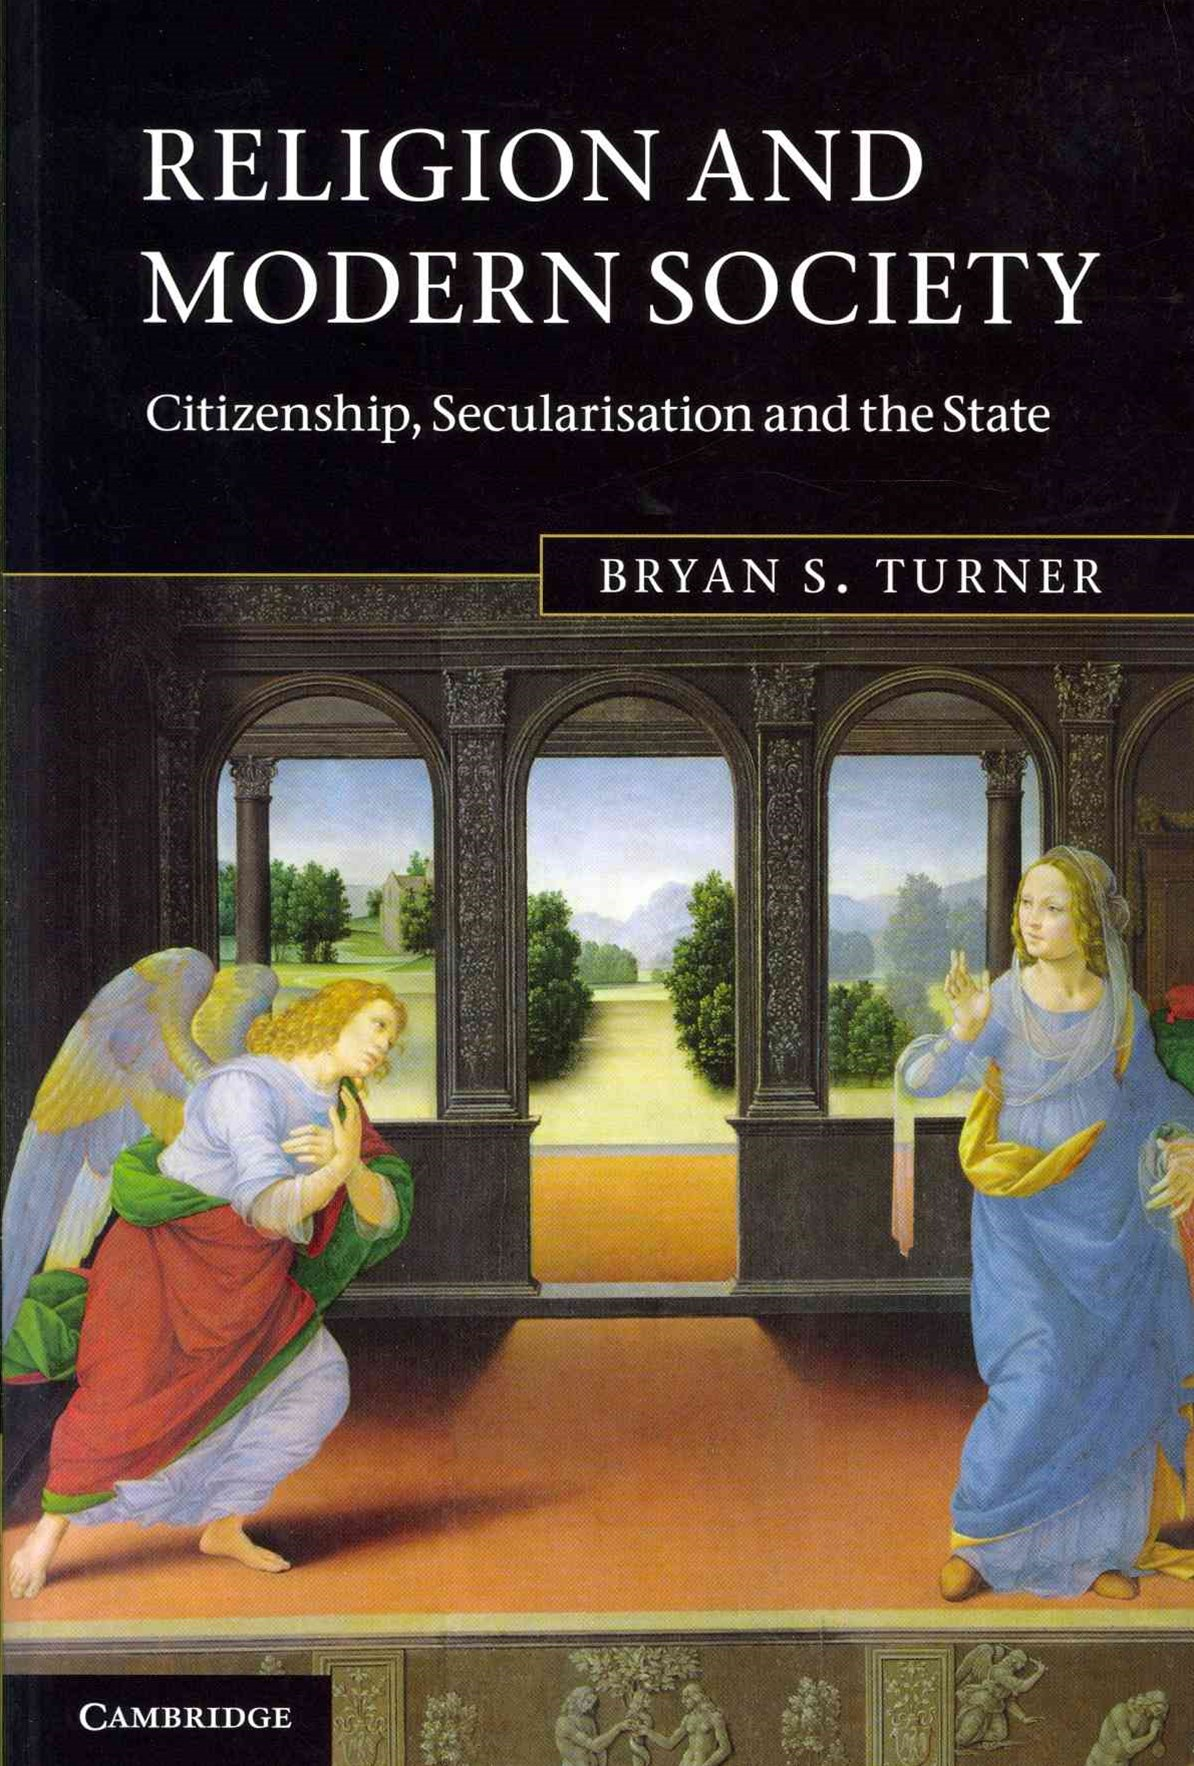 Religion and Modern Society